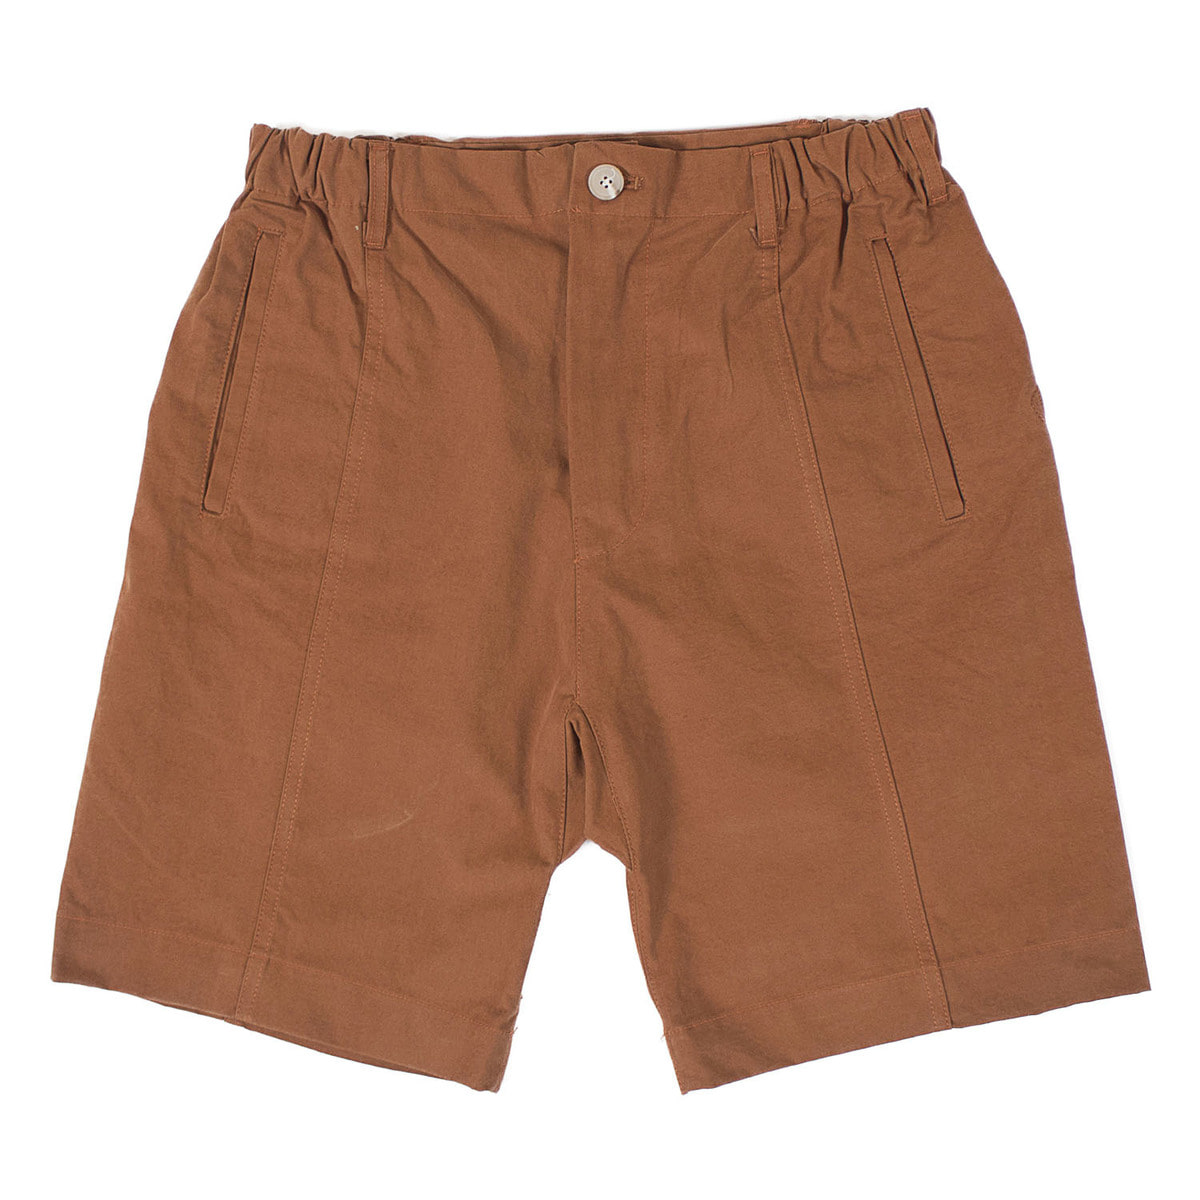 Semi Baggy Shorts (Orange)